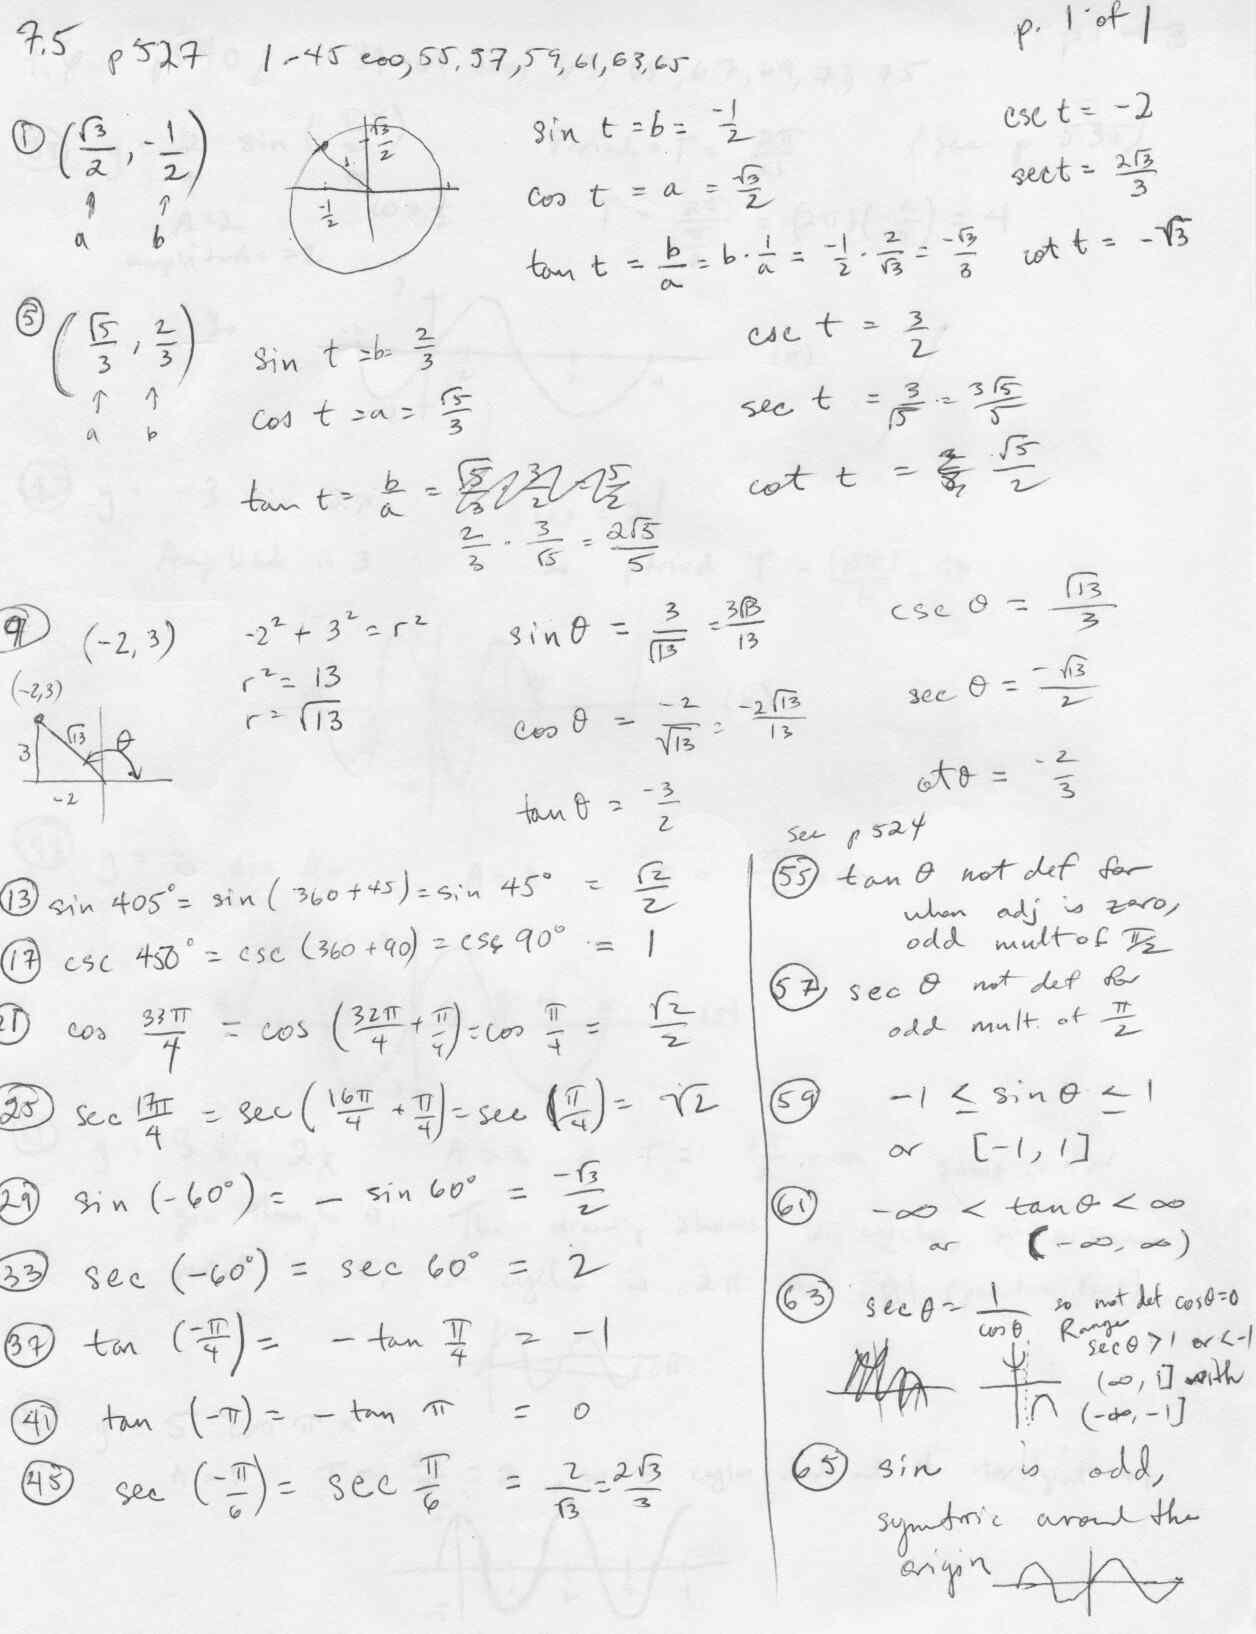 Worksheet 74 Inverse Functions Answers Inequalities Worksheet Prek In Inverse Functions Worksheet With Answers